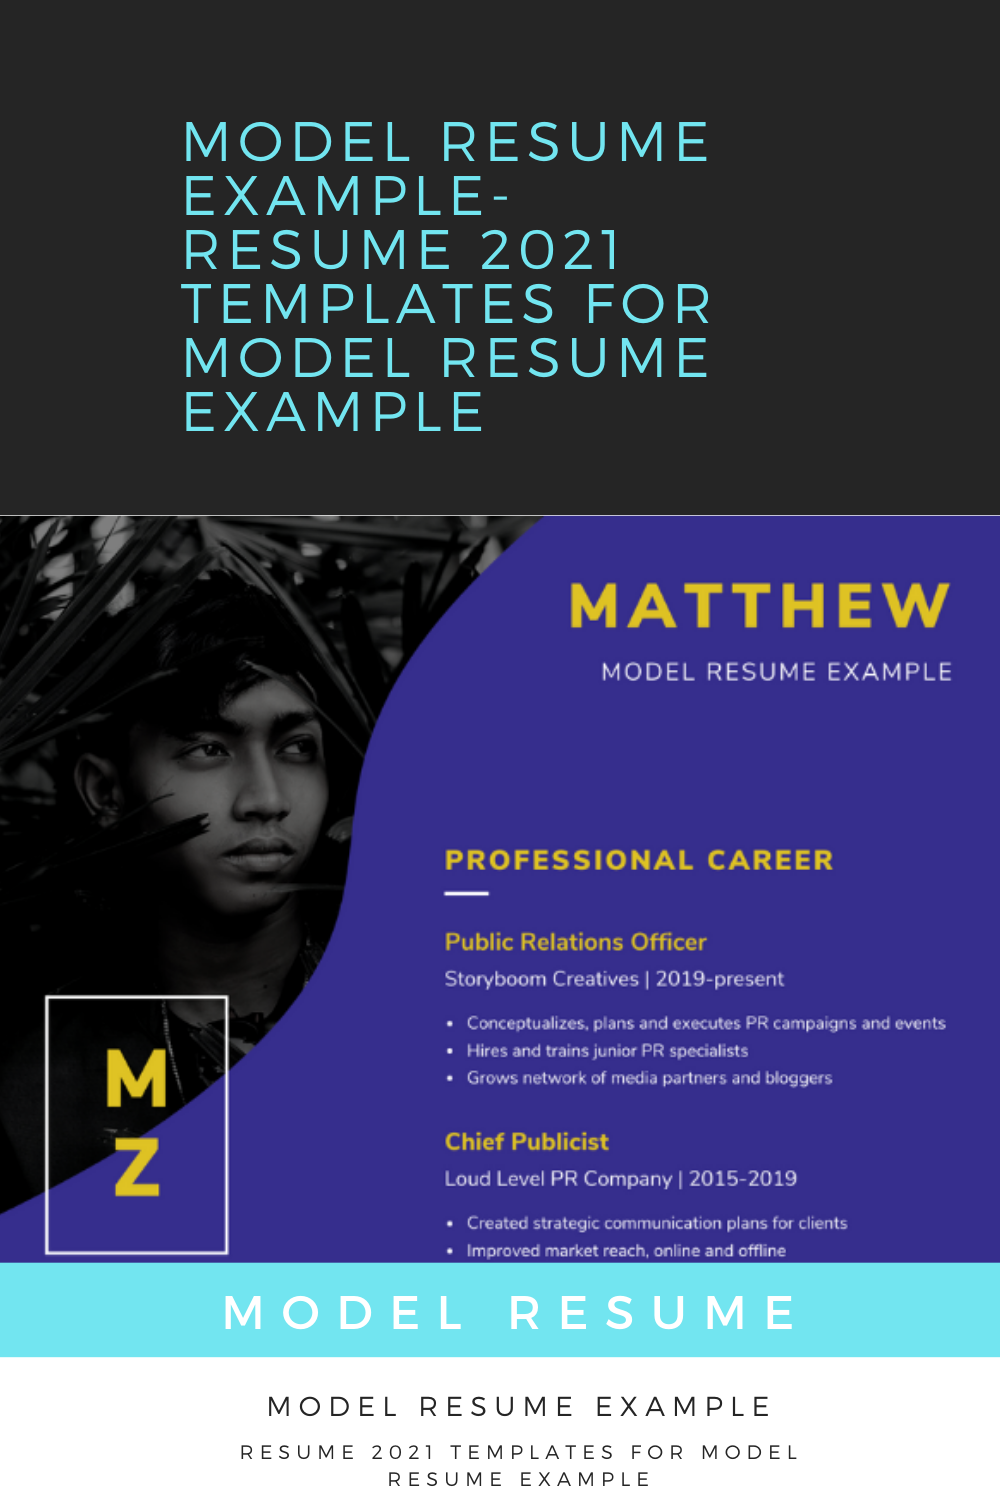 Model Resume Example Resume 2021 Templates For Model Resume Example In 2021 Resume Examples Resume Resume Template